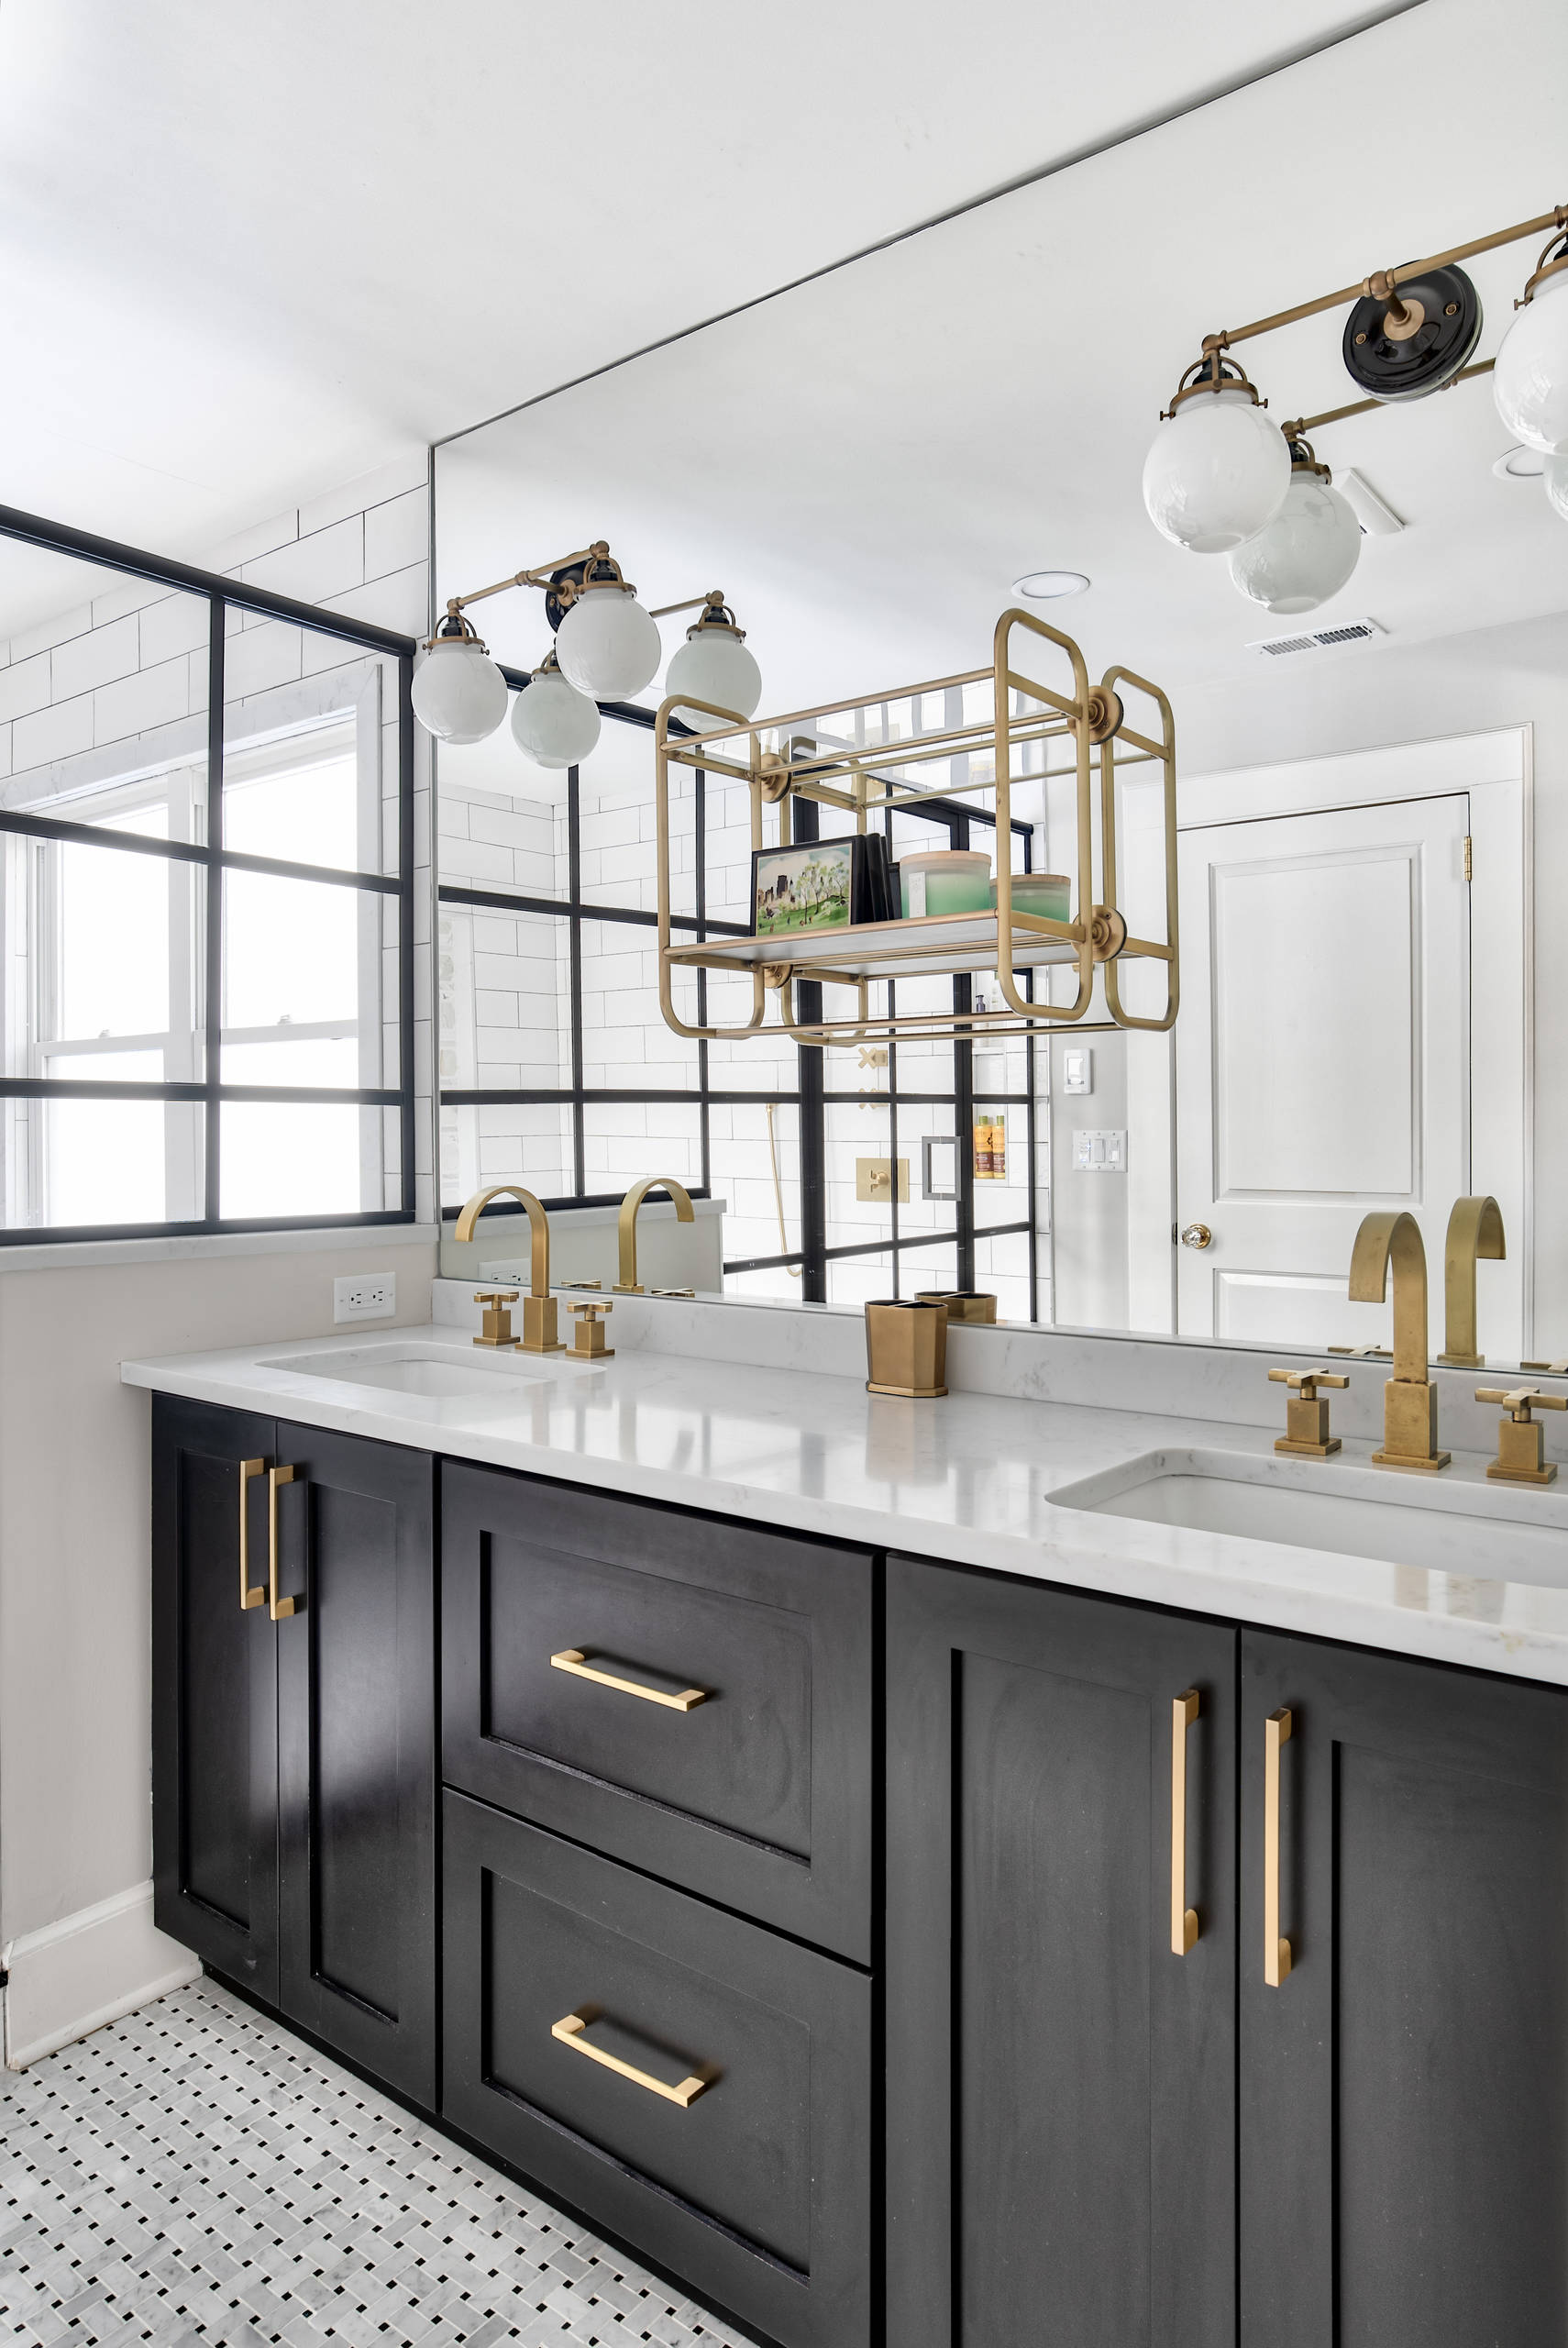 10 Beautiful Modern Bathroom With Black Cabinets Pictures & Ideas